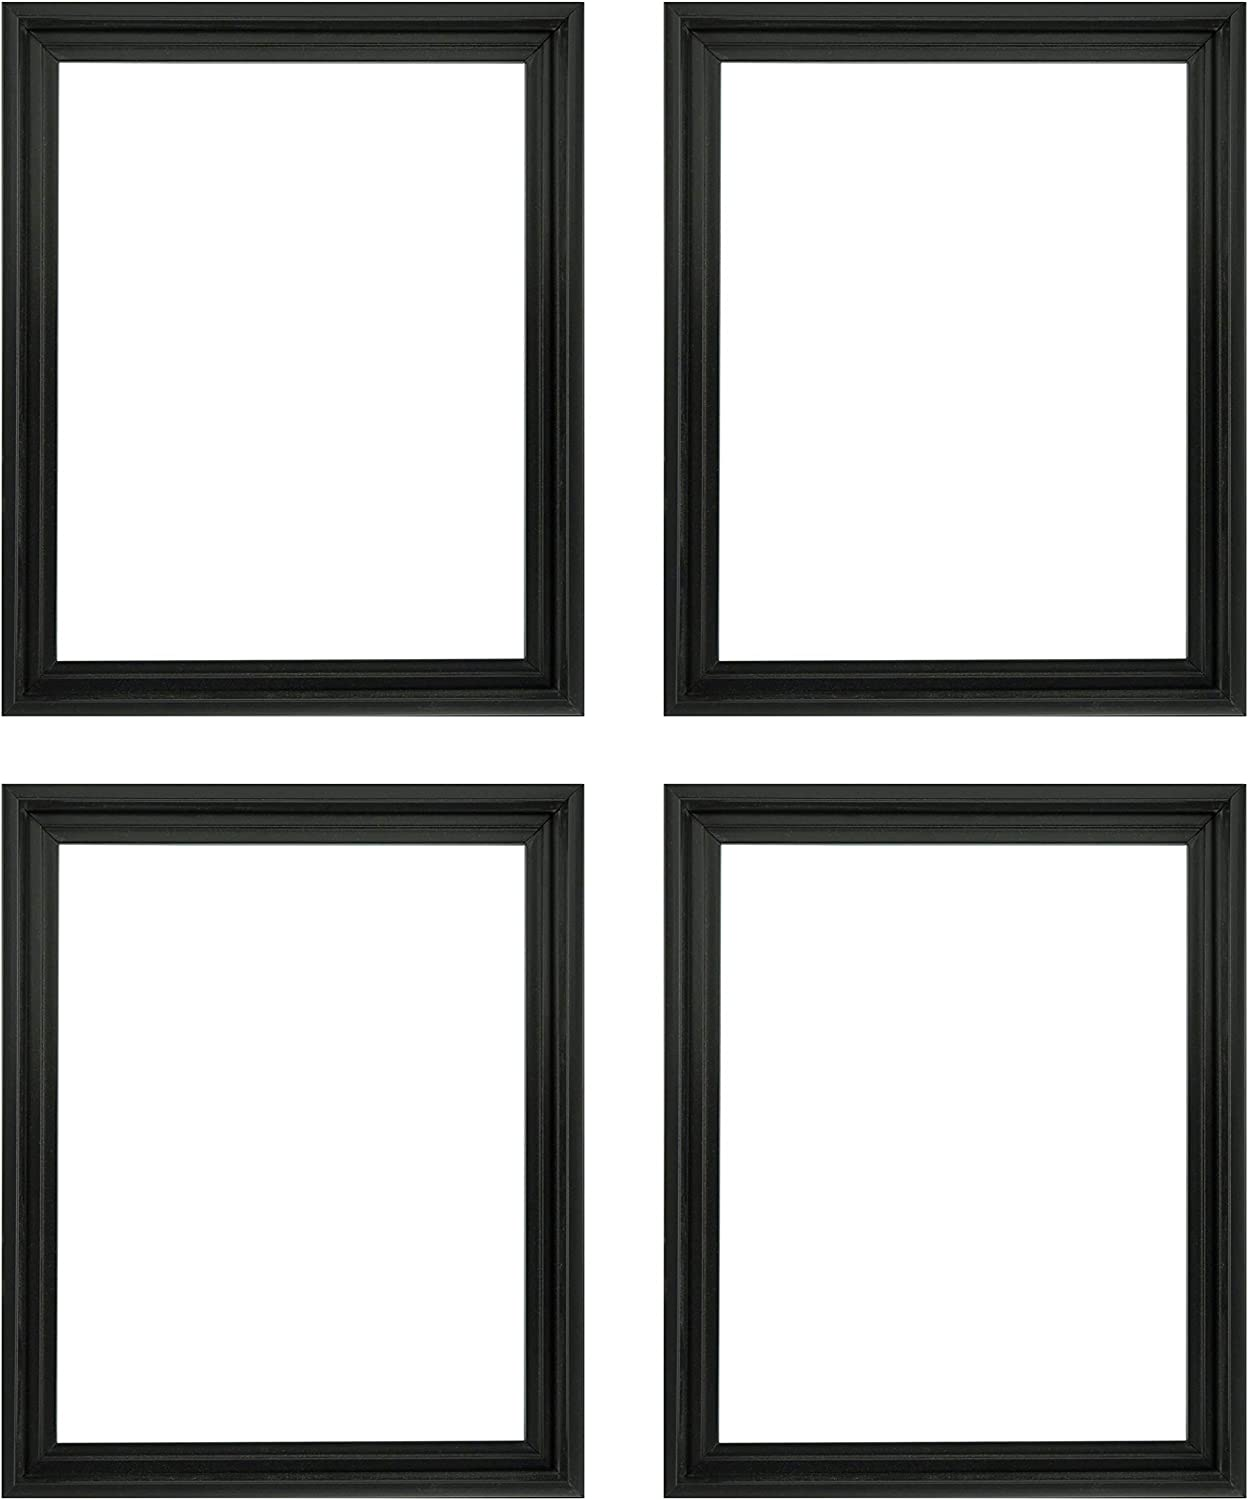 Amazon Com Creative Mark Illusions Floater Frame For 3 4 Inch Depth Stretched Canvas Paintings Artwork 4 Pack Black 9x12 Posters Prints